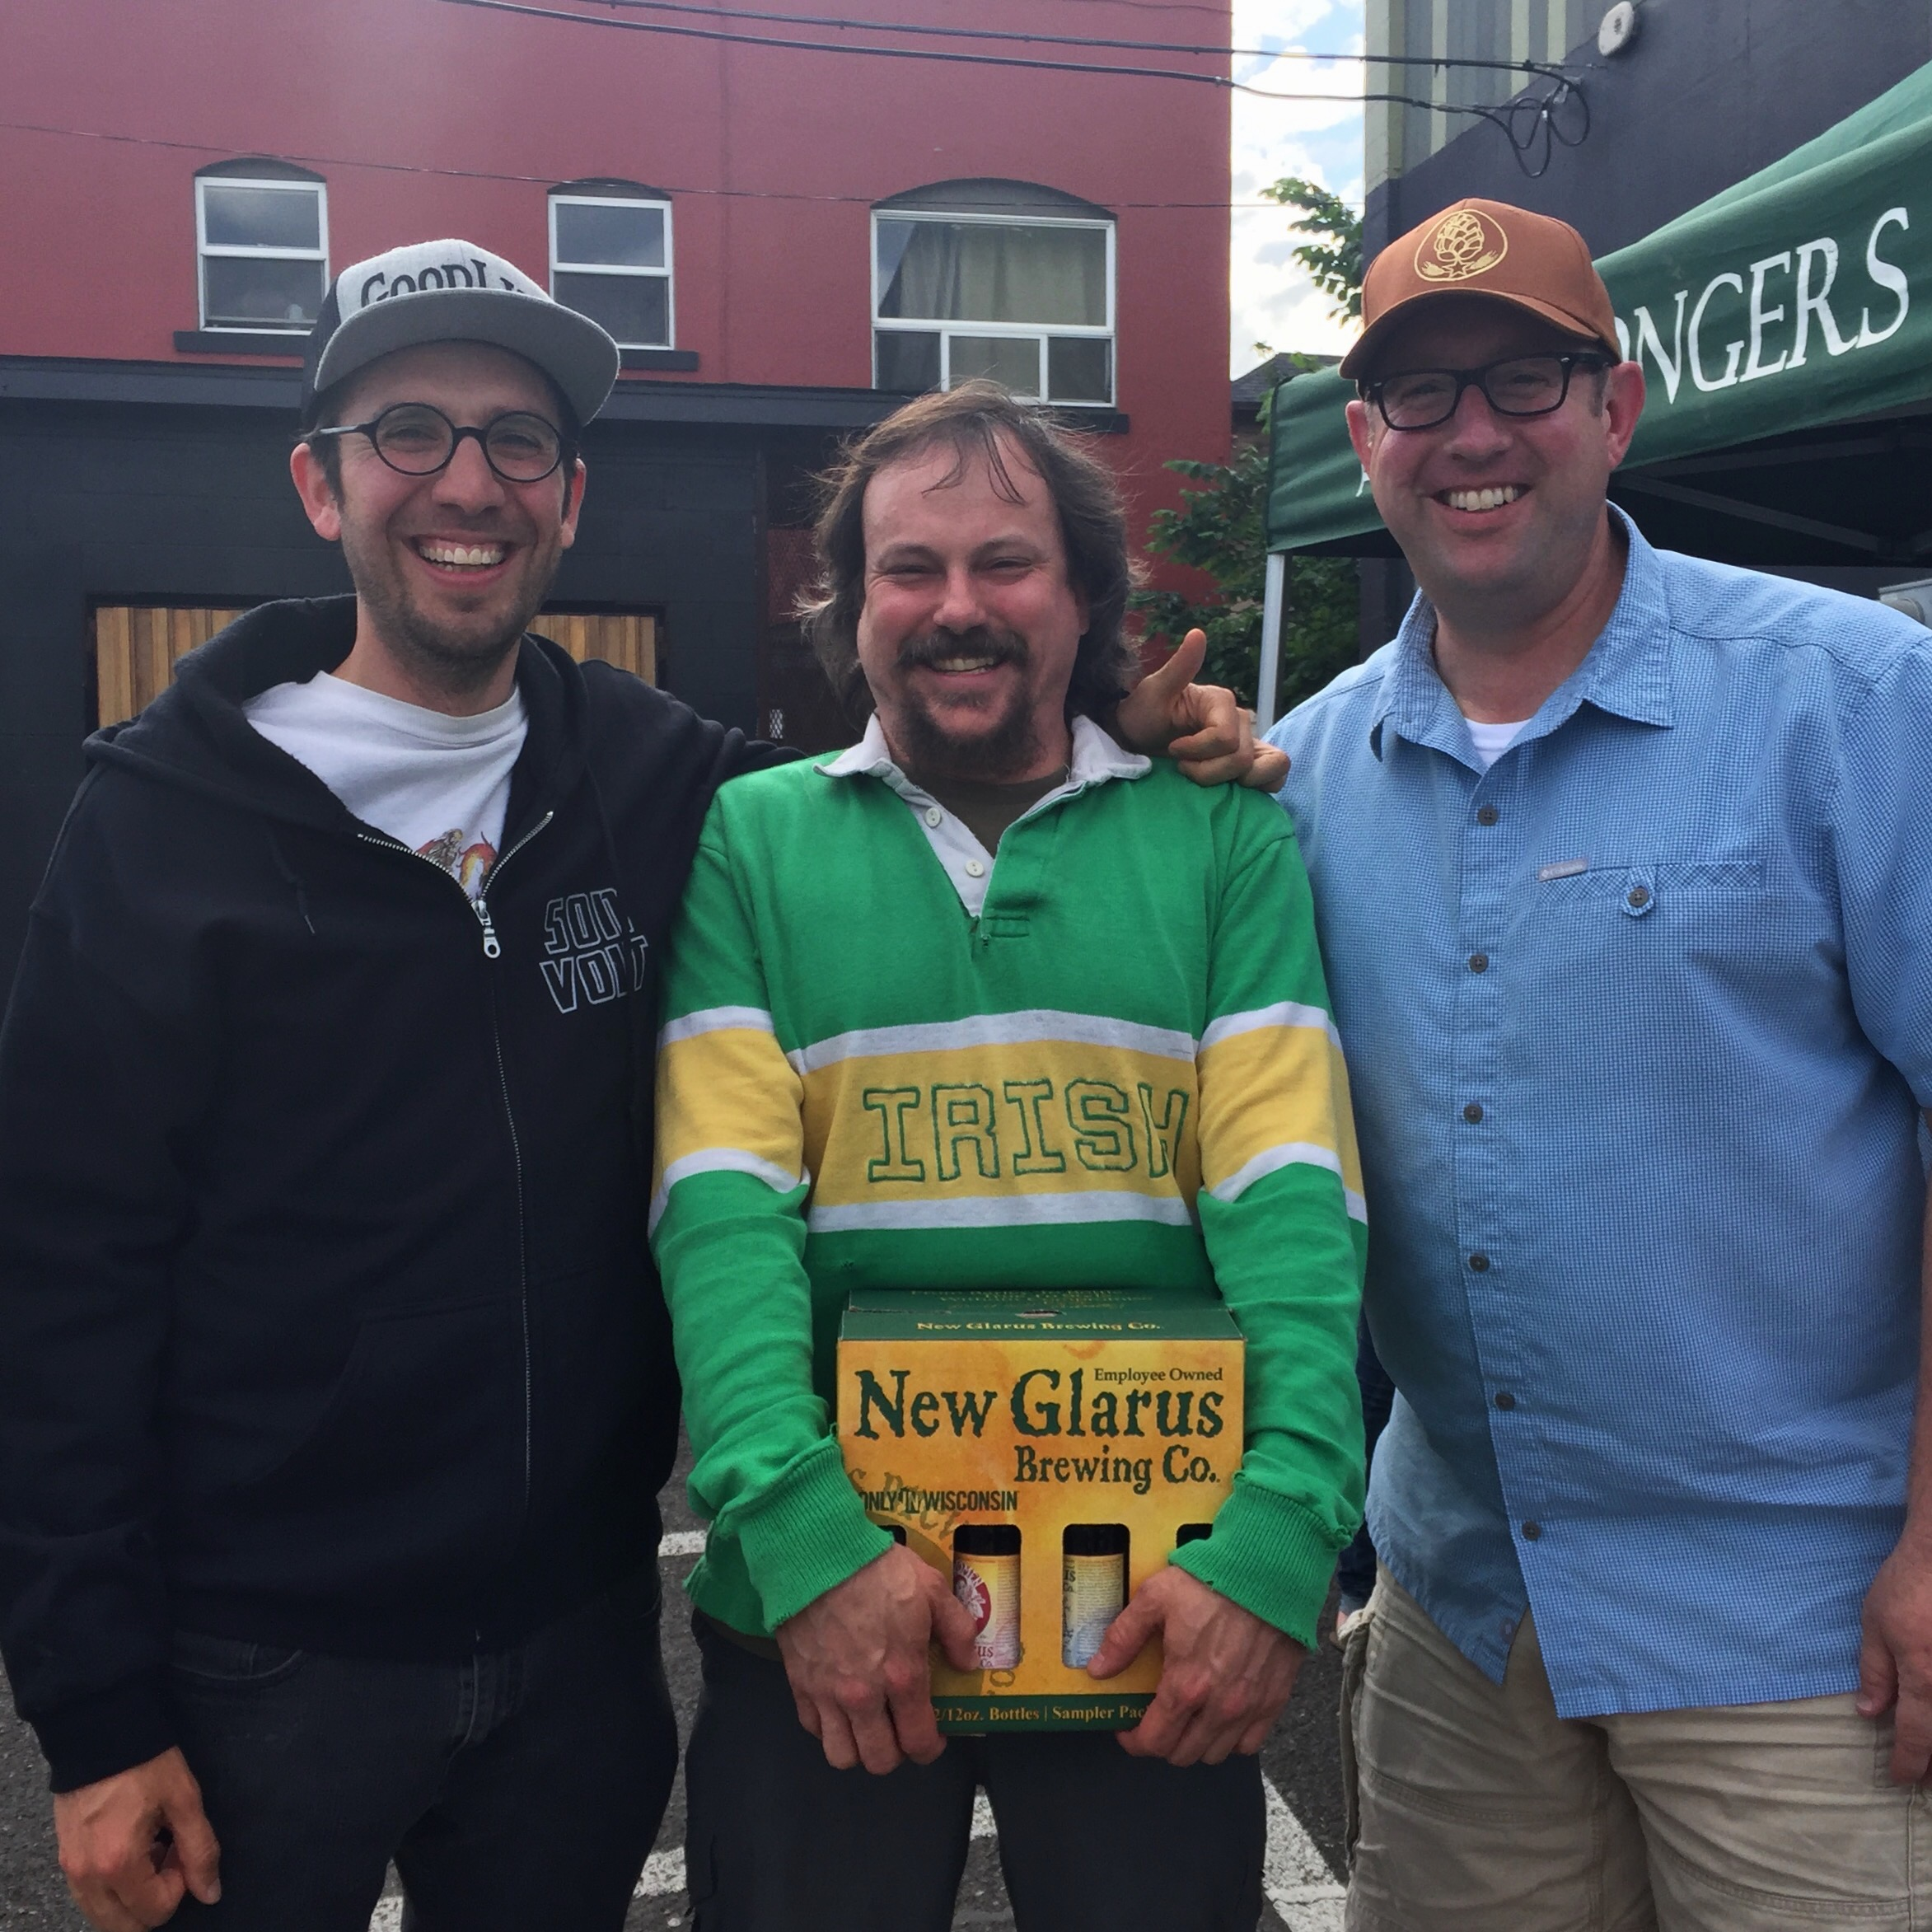 Wishing Sean Campbell from The BeerMongers a Happy Birthday with a 12 pack of beer from New Glarus Brewing.